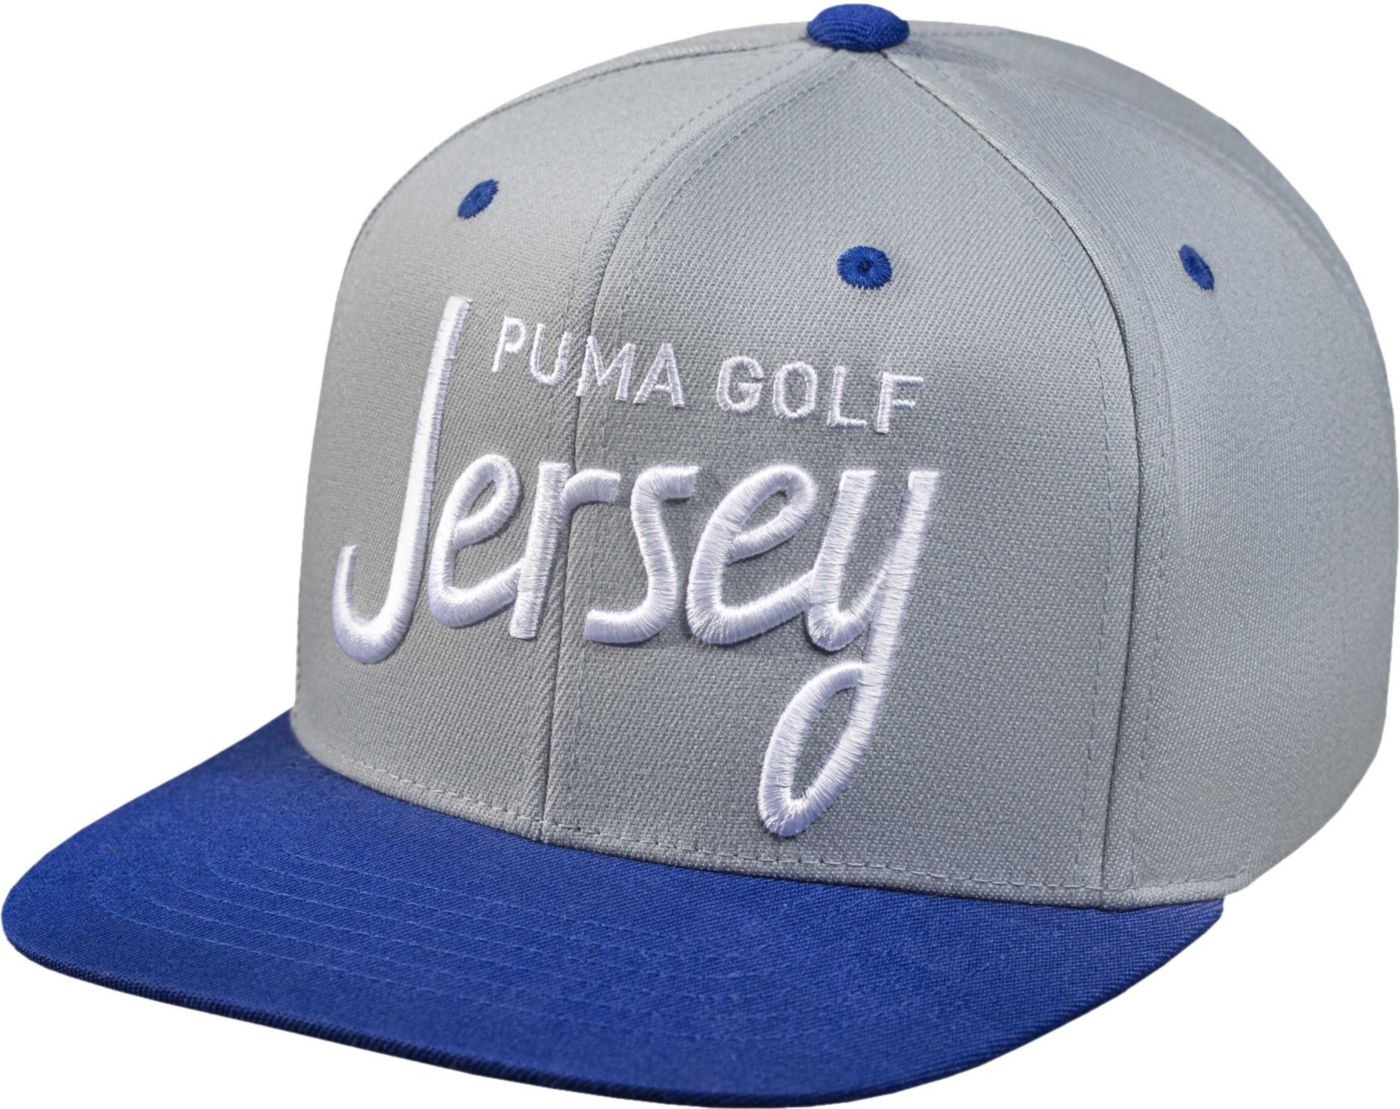 PUMA Men's City Collection Jersey Snapback Golf Hat